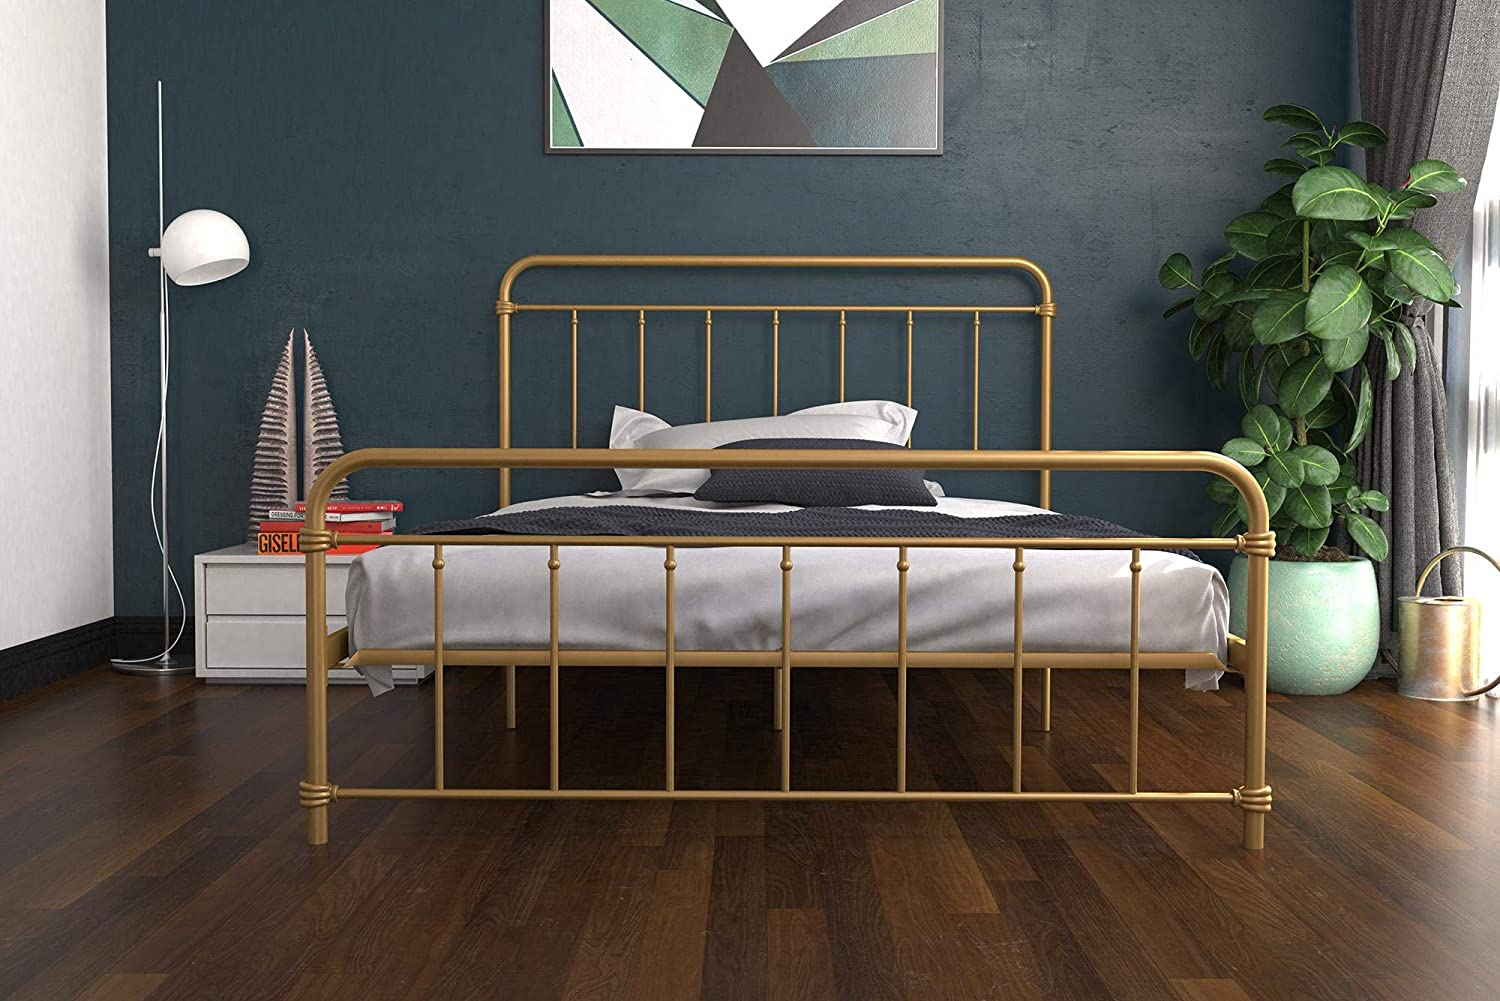 Black Multifunctional Piece with Adjustable Heights for Under Bed Storage Twin DHP Winston Metal Bed Frame